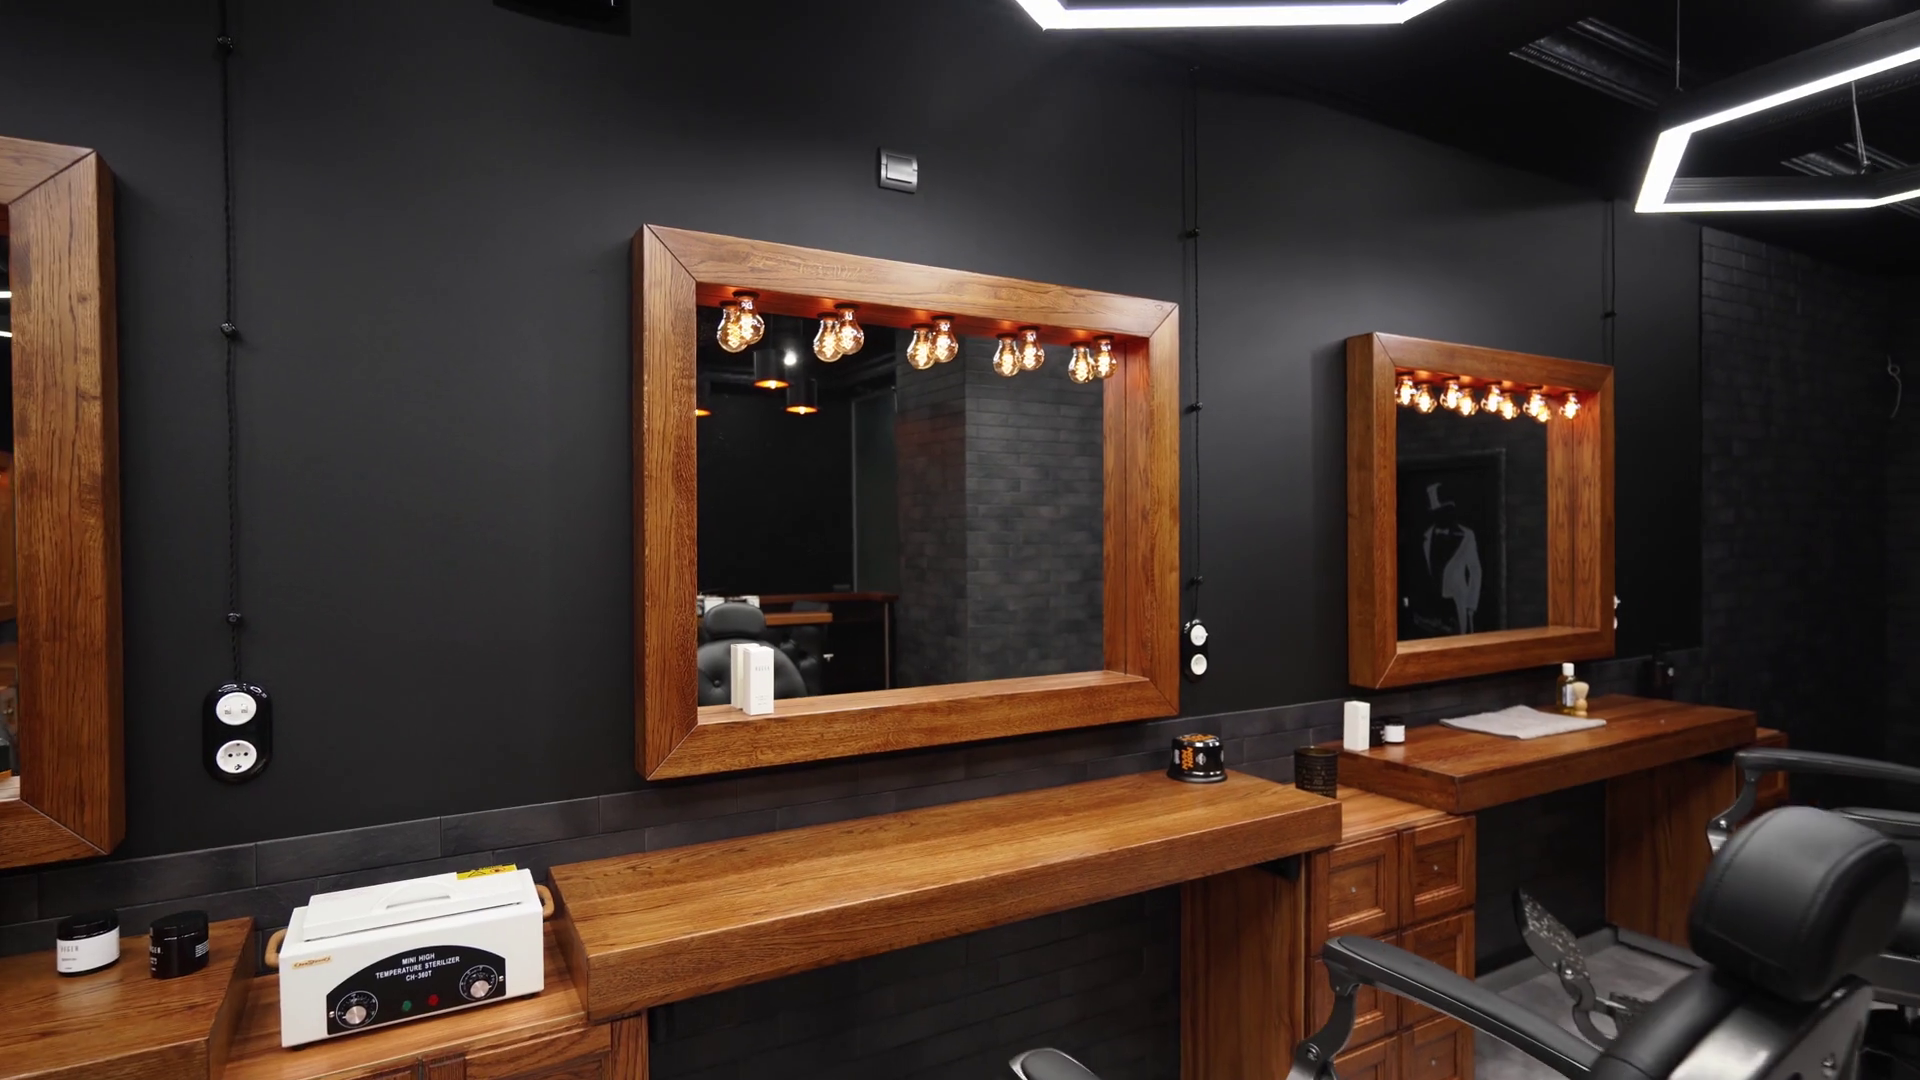 Vintage Barbershop Interior Movement Along The Chairs Wooden Tables And Mirrors Stylish Hair Studio Indoors Stylish Beauty Salon Design With Modern Lighting And Lamps Stock Video Footage Storyblocks